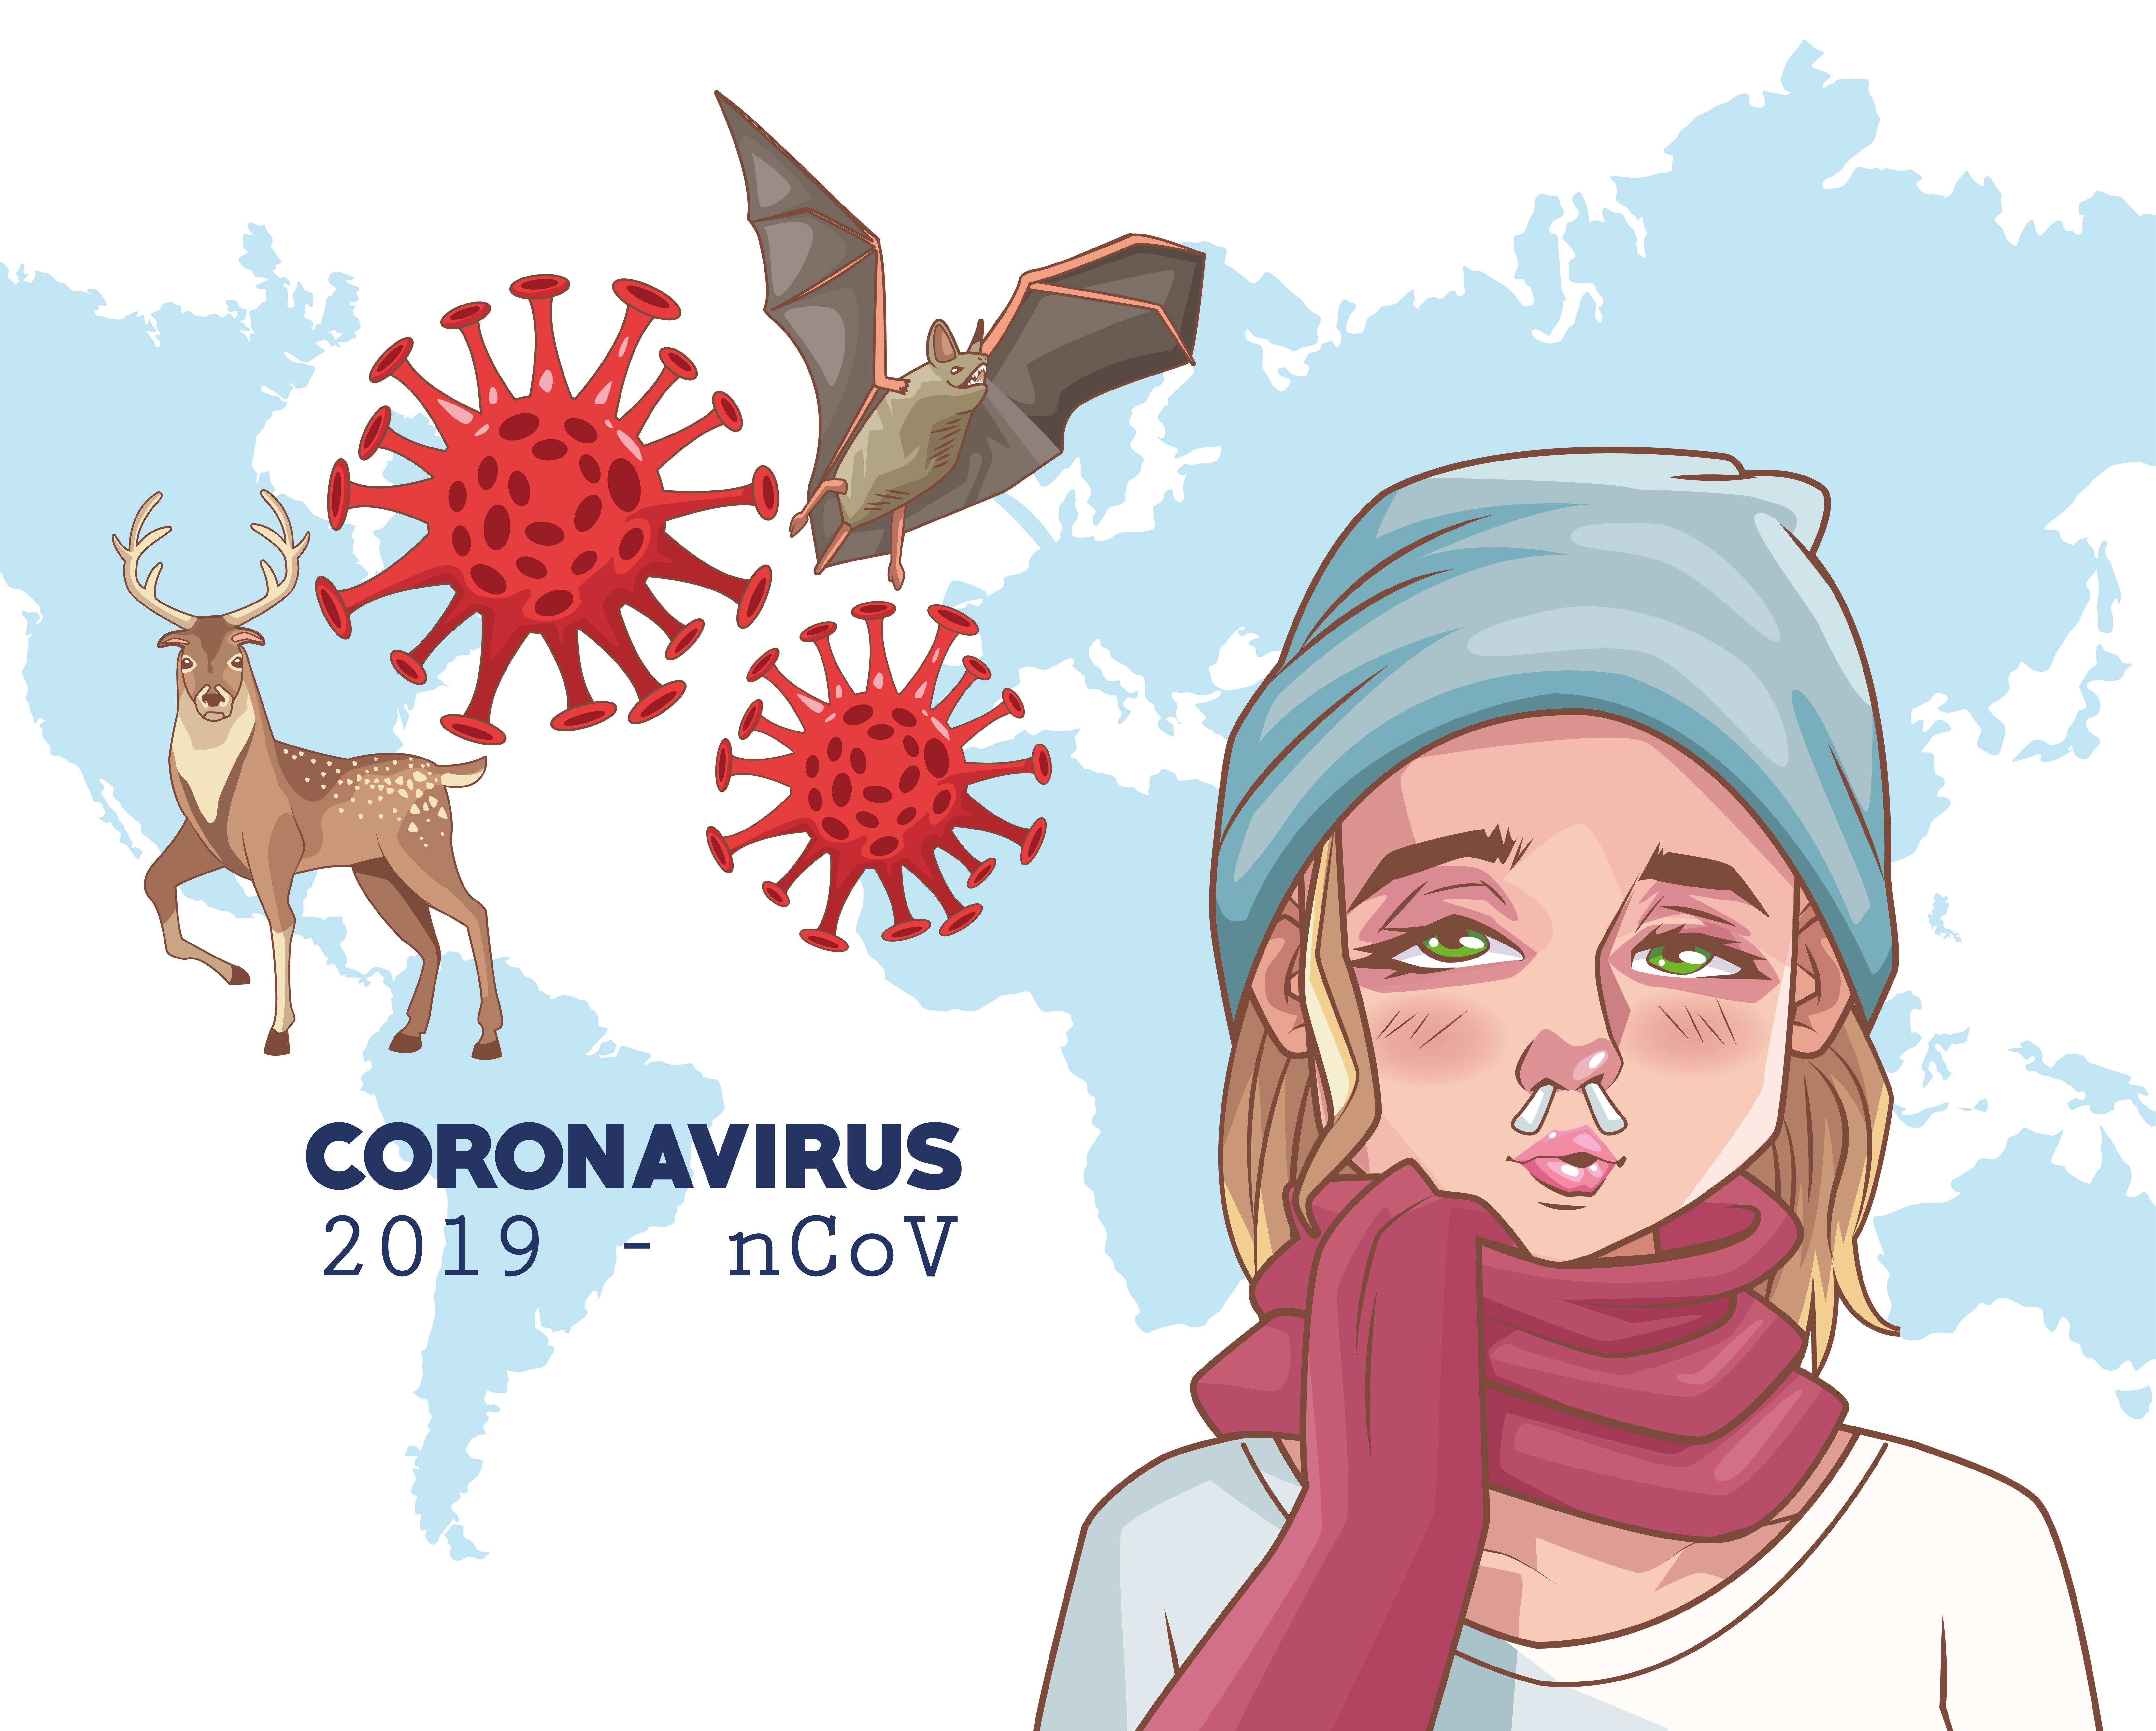 Coronavirus infographic with sick woman and animals vector